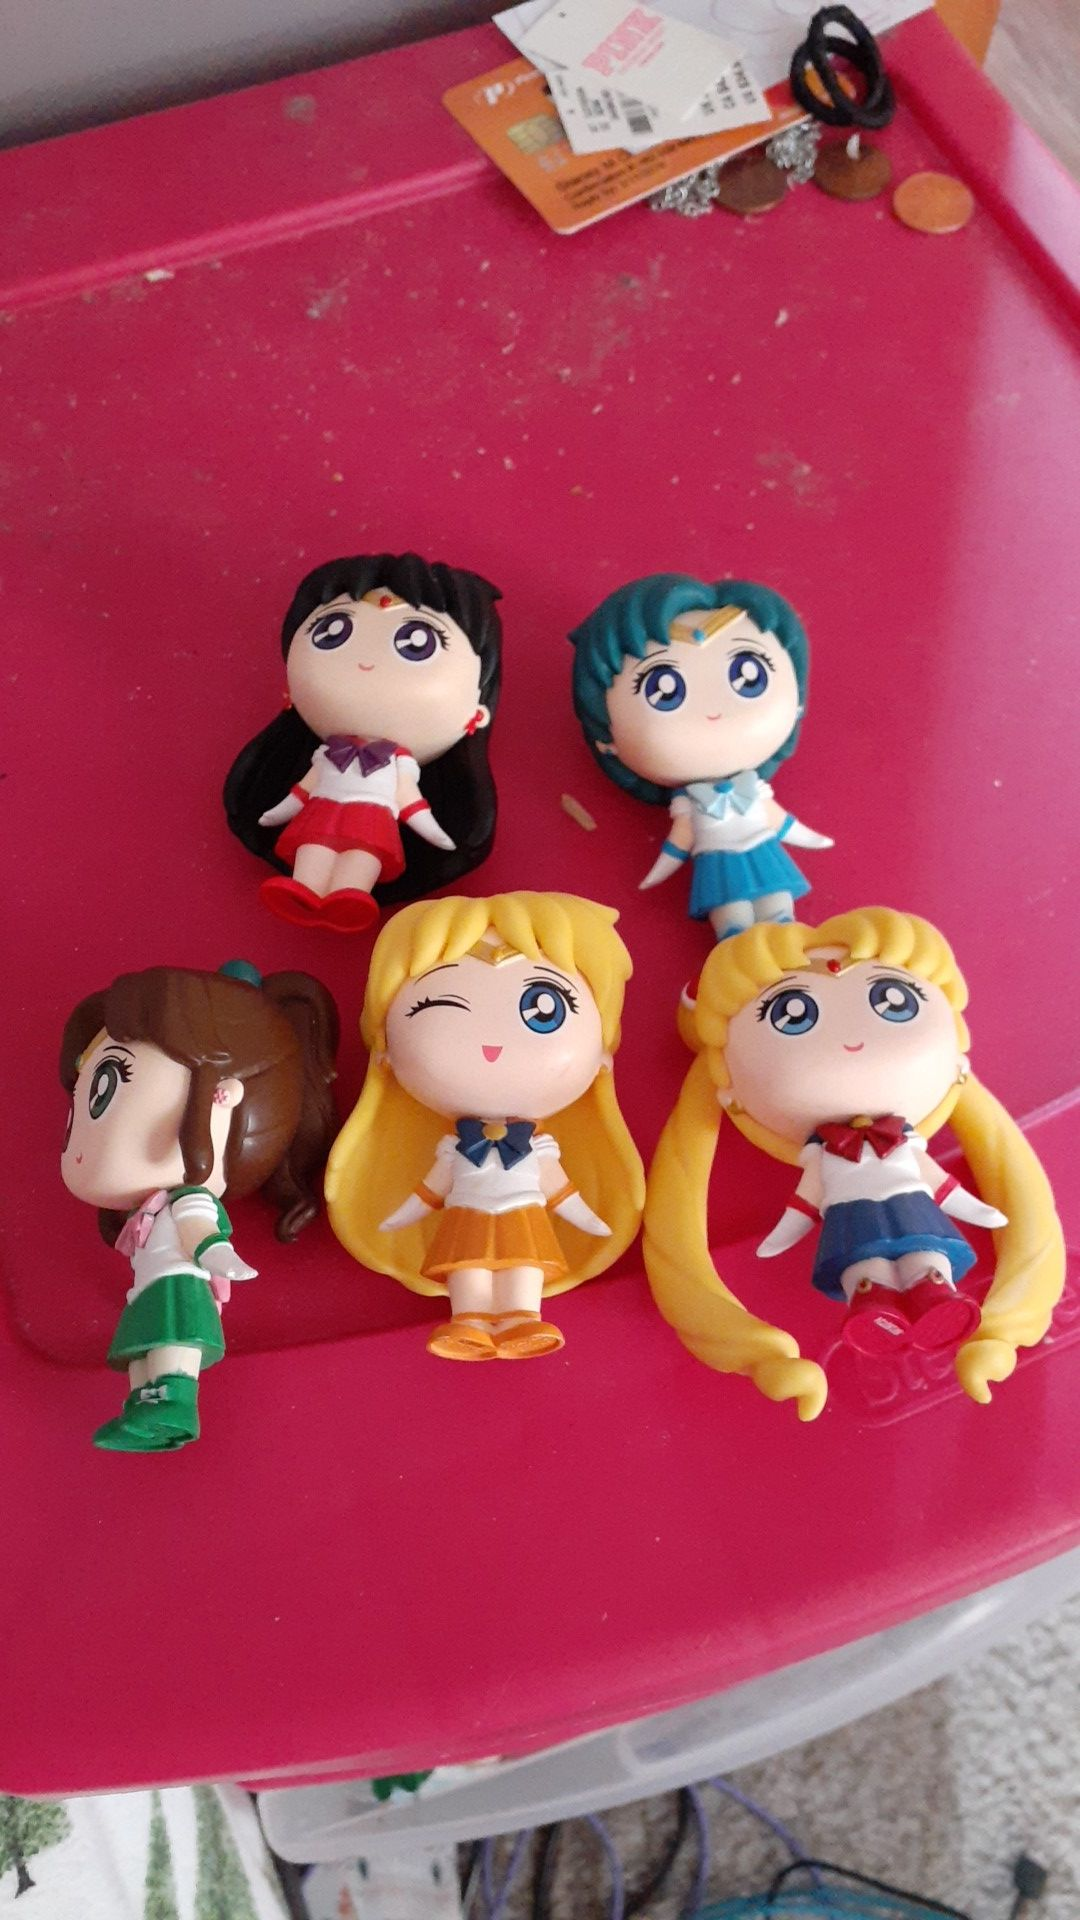 Sailor moon and the sailor scouts including rini